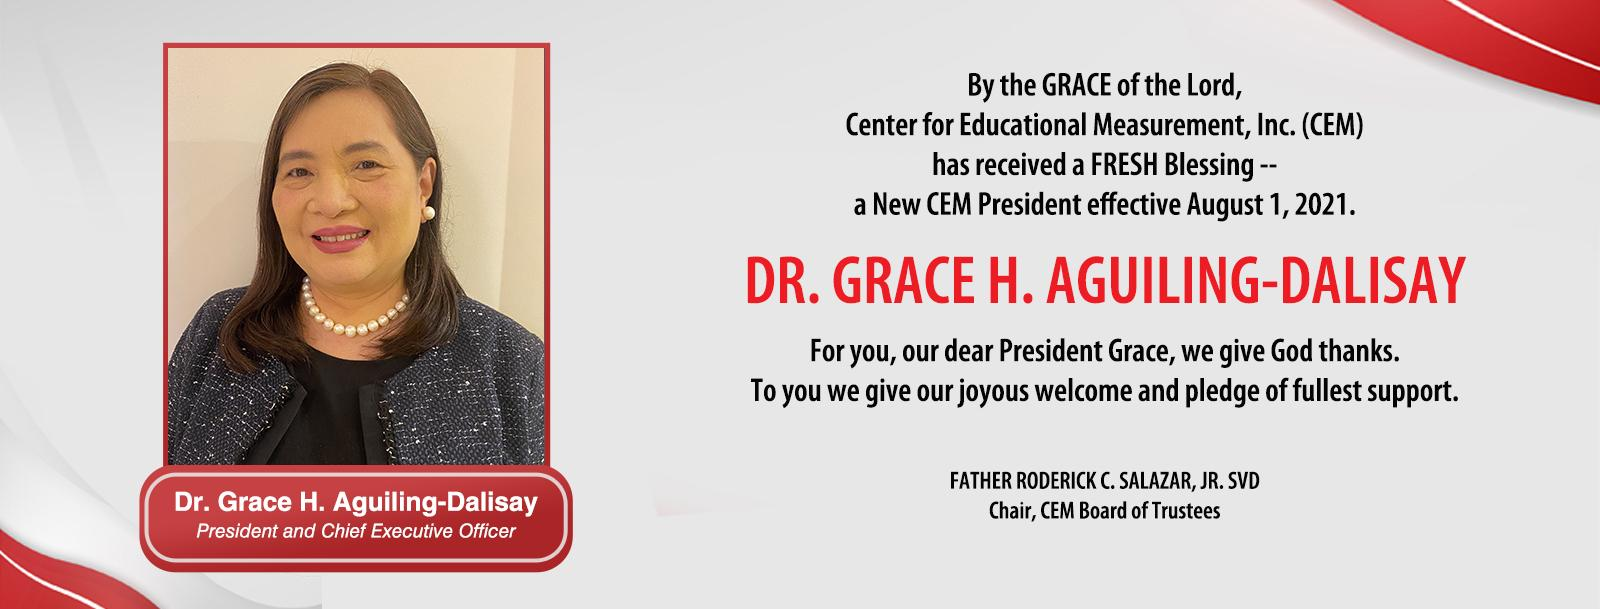 Dr. Grace H. Aguiling-Dalisay - New CEM President & CEO